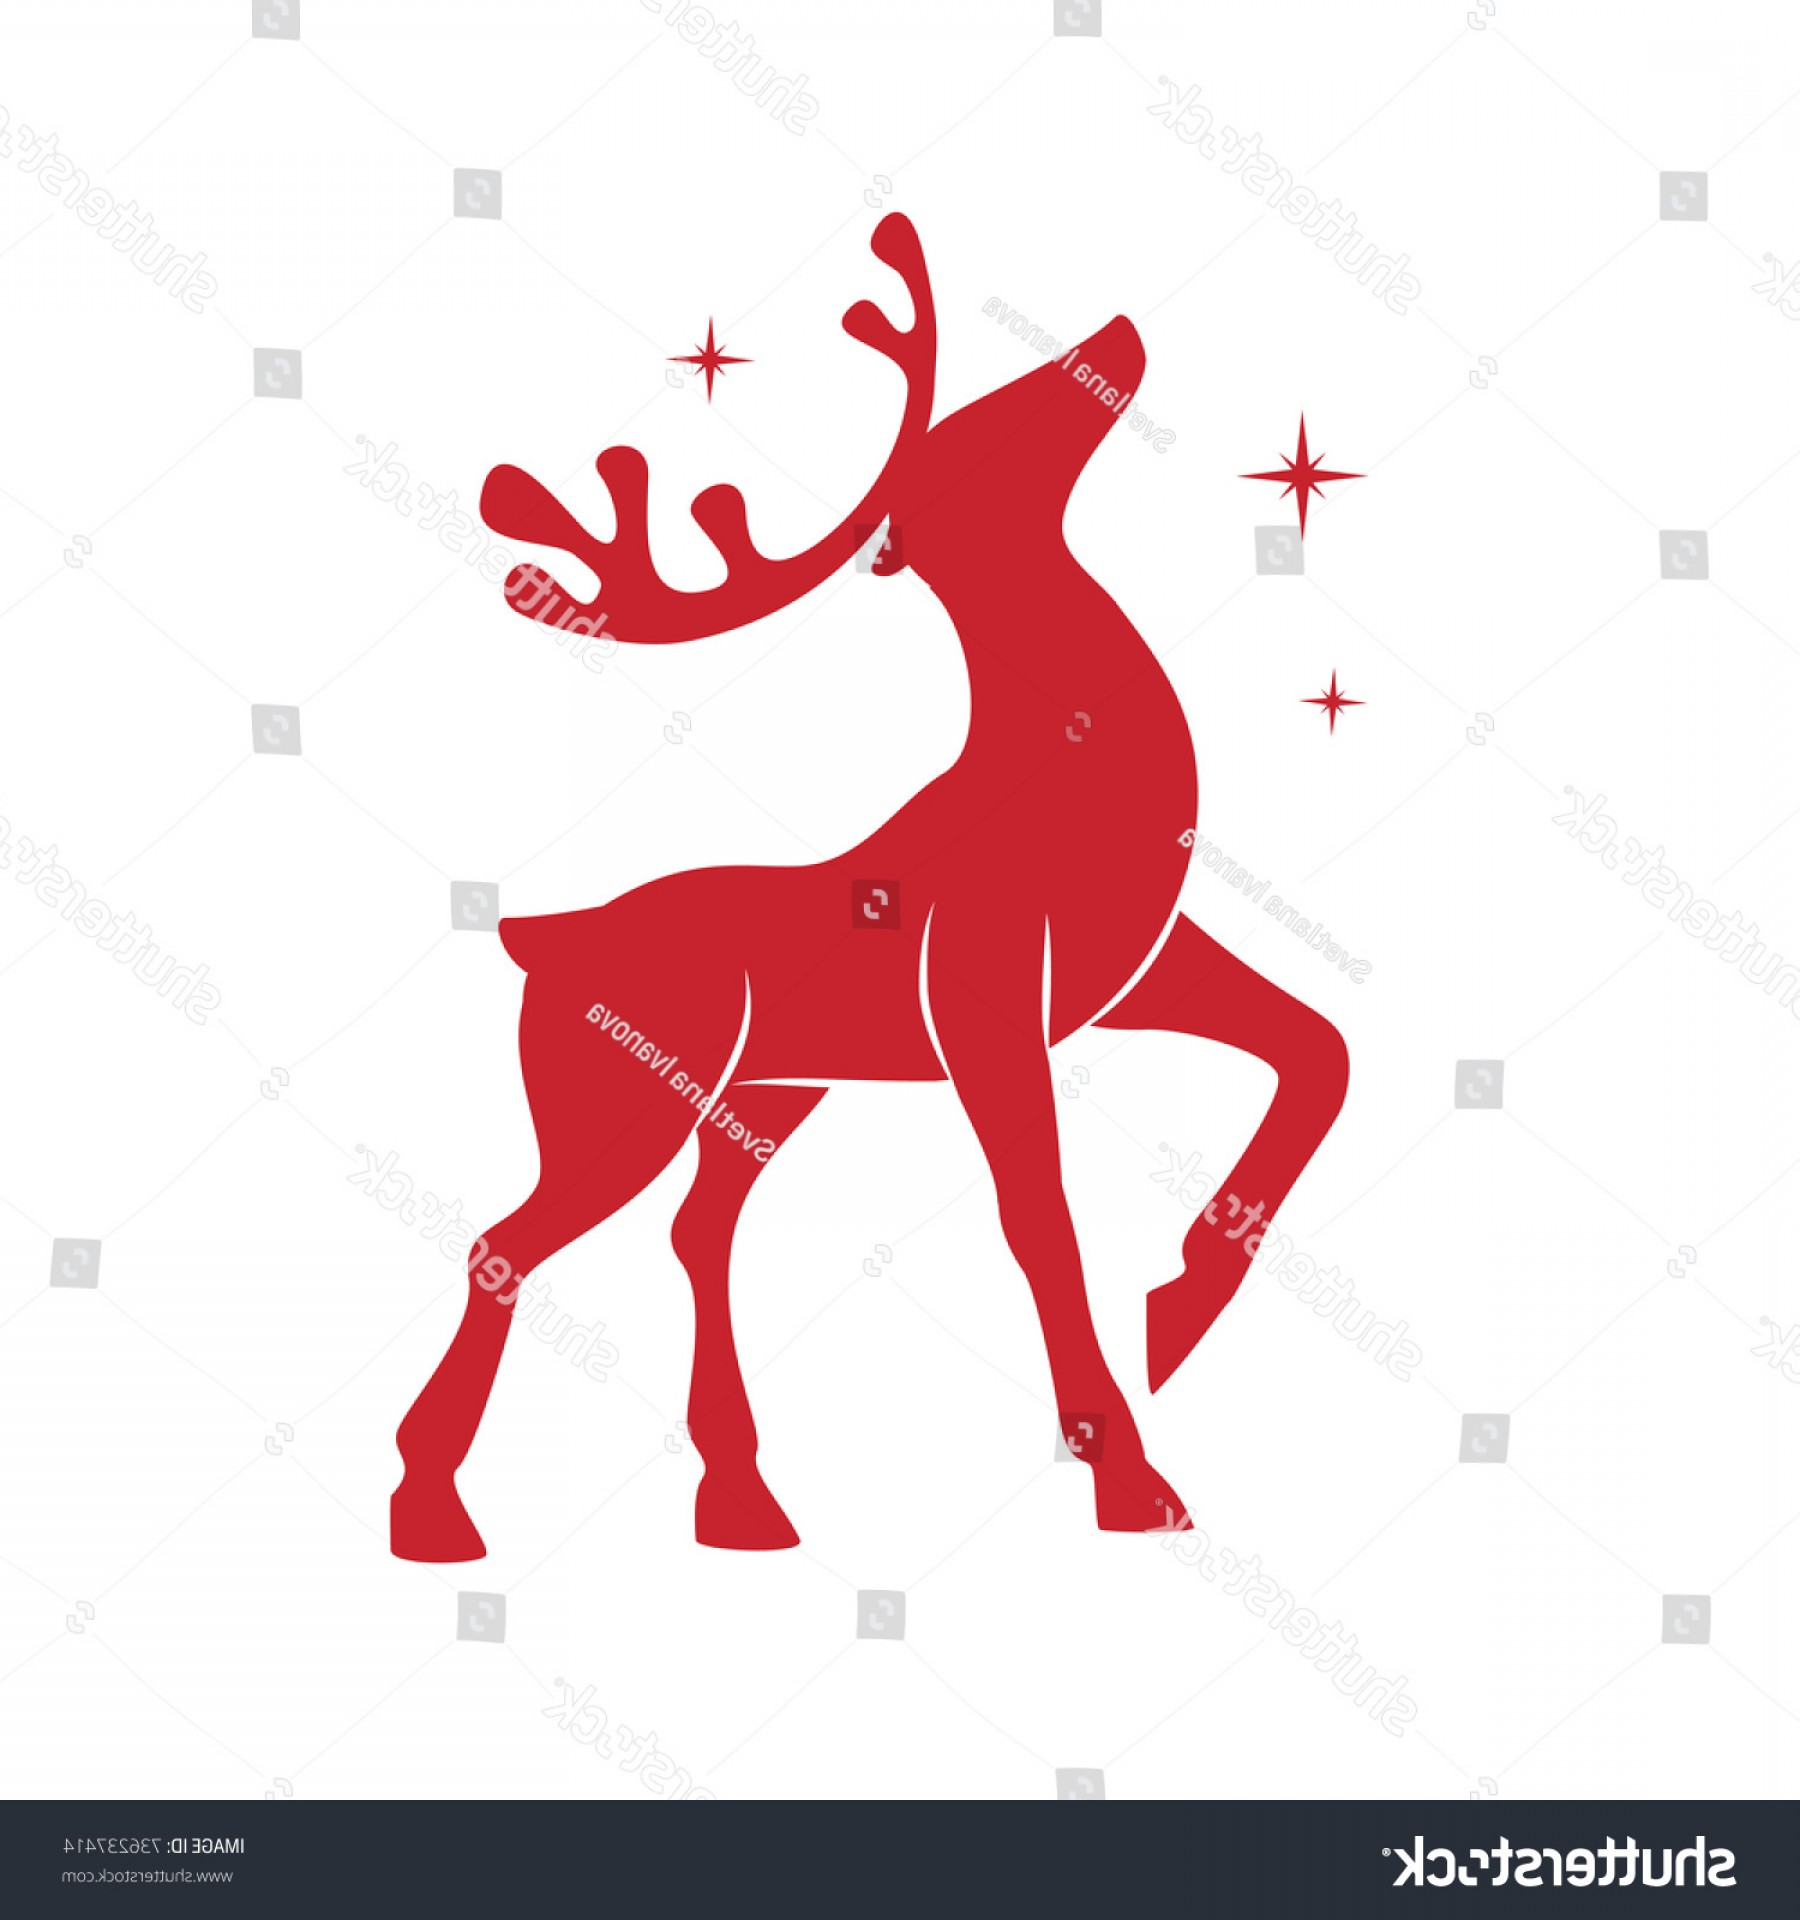 Kissing Reindeer Silhouette Vector: Illustration Silhouette Red Reindeer Isolated On